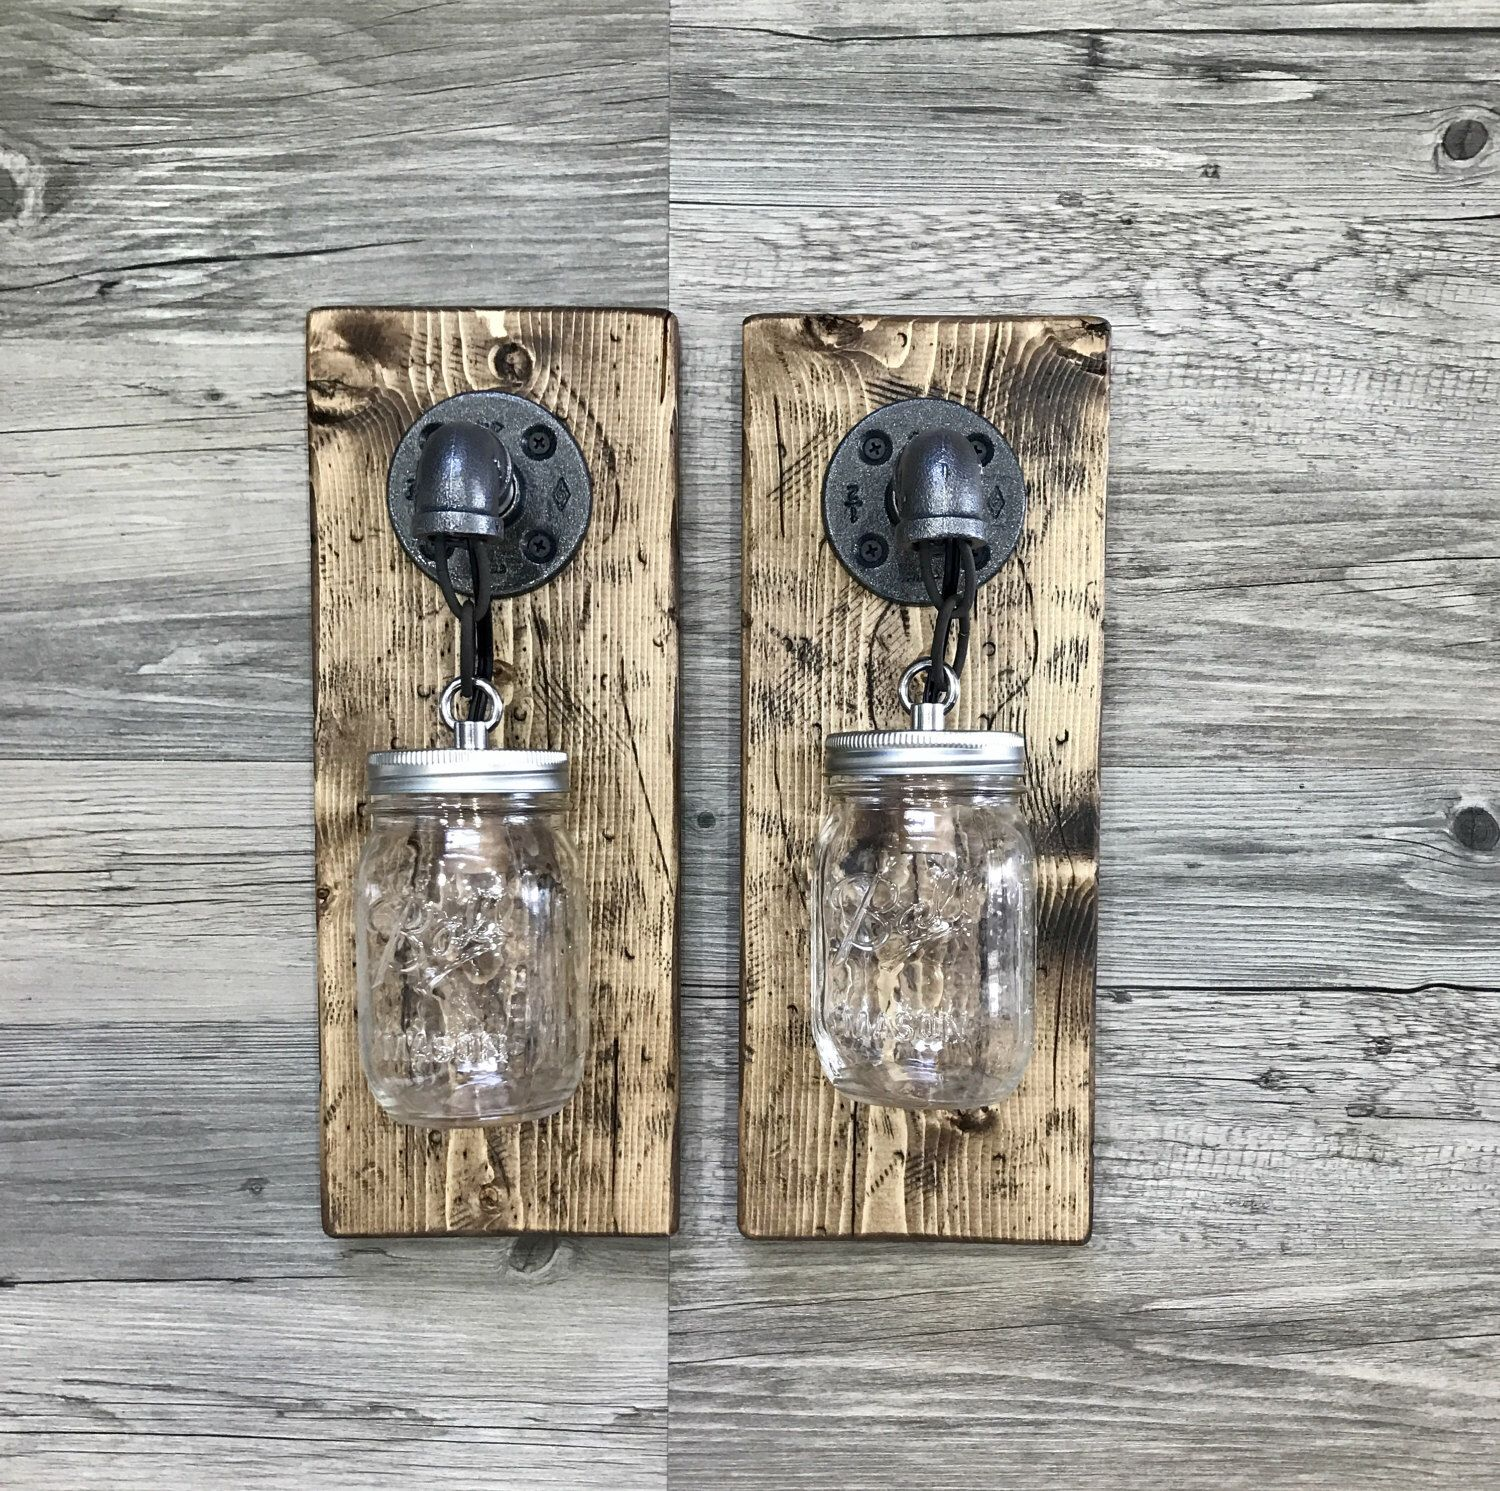 cabin wall ashton sconce lighting rustic sconces